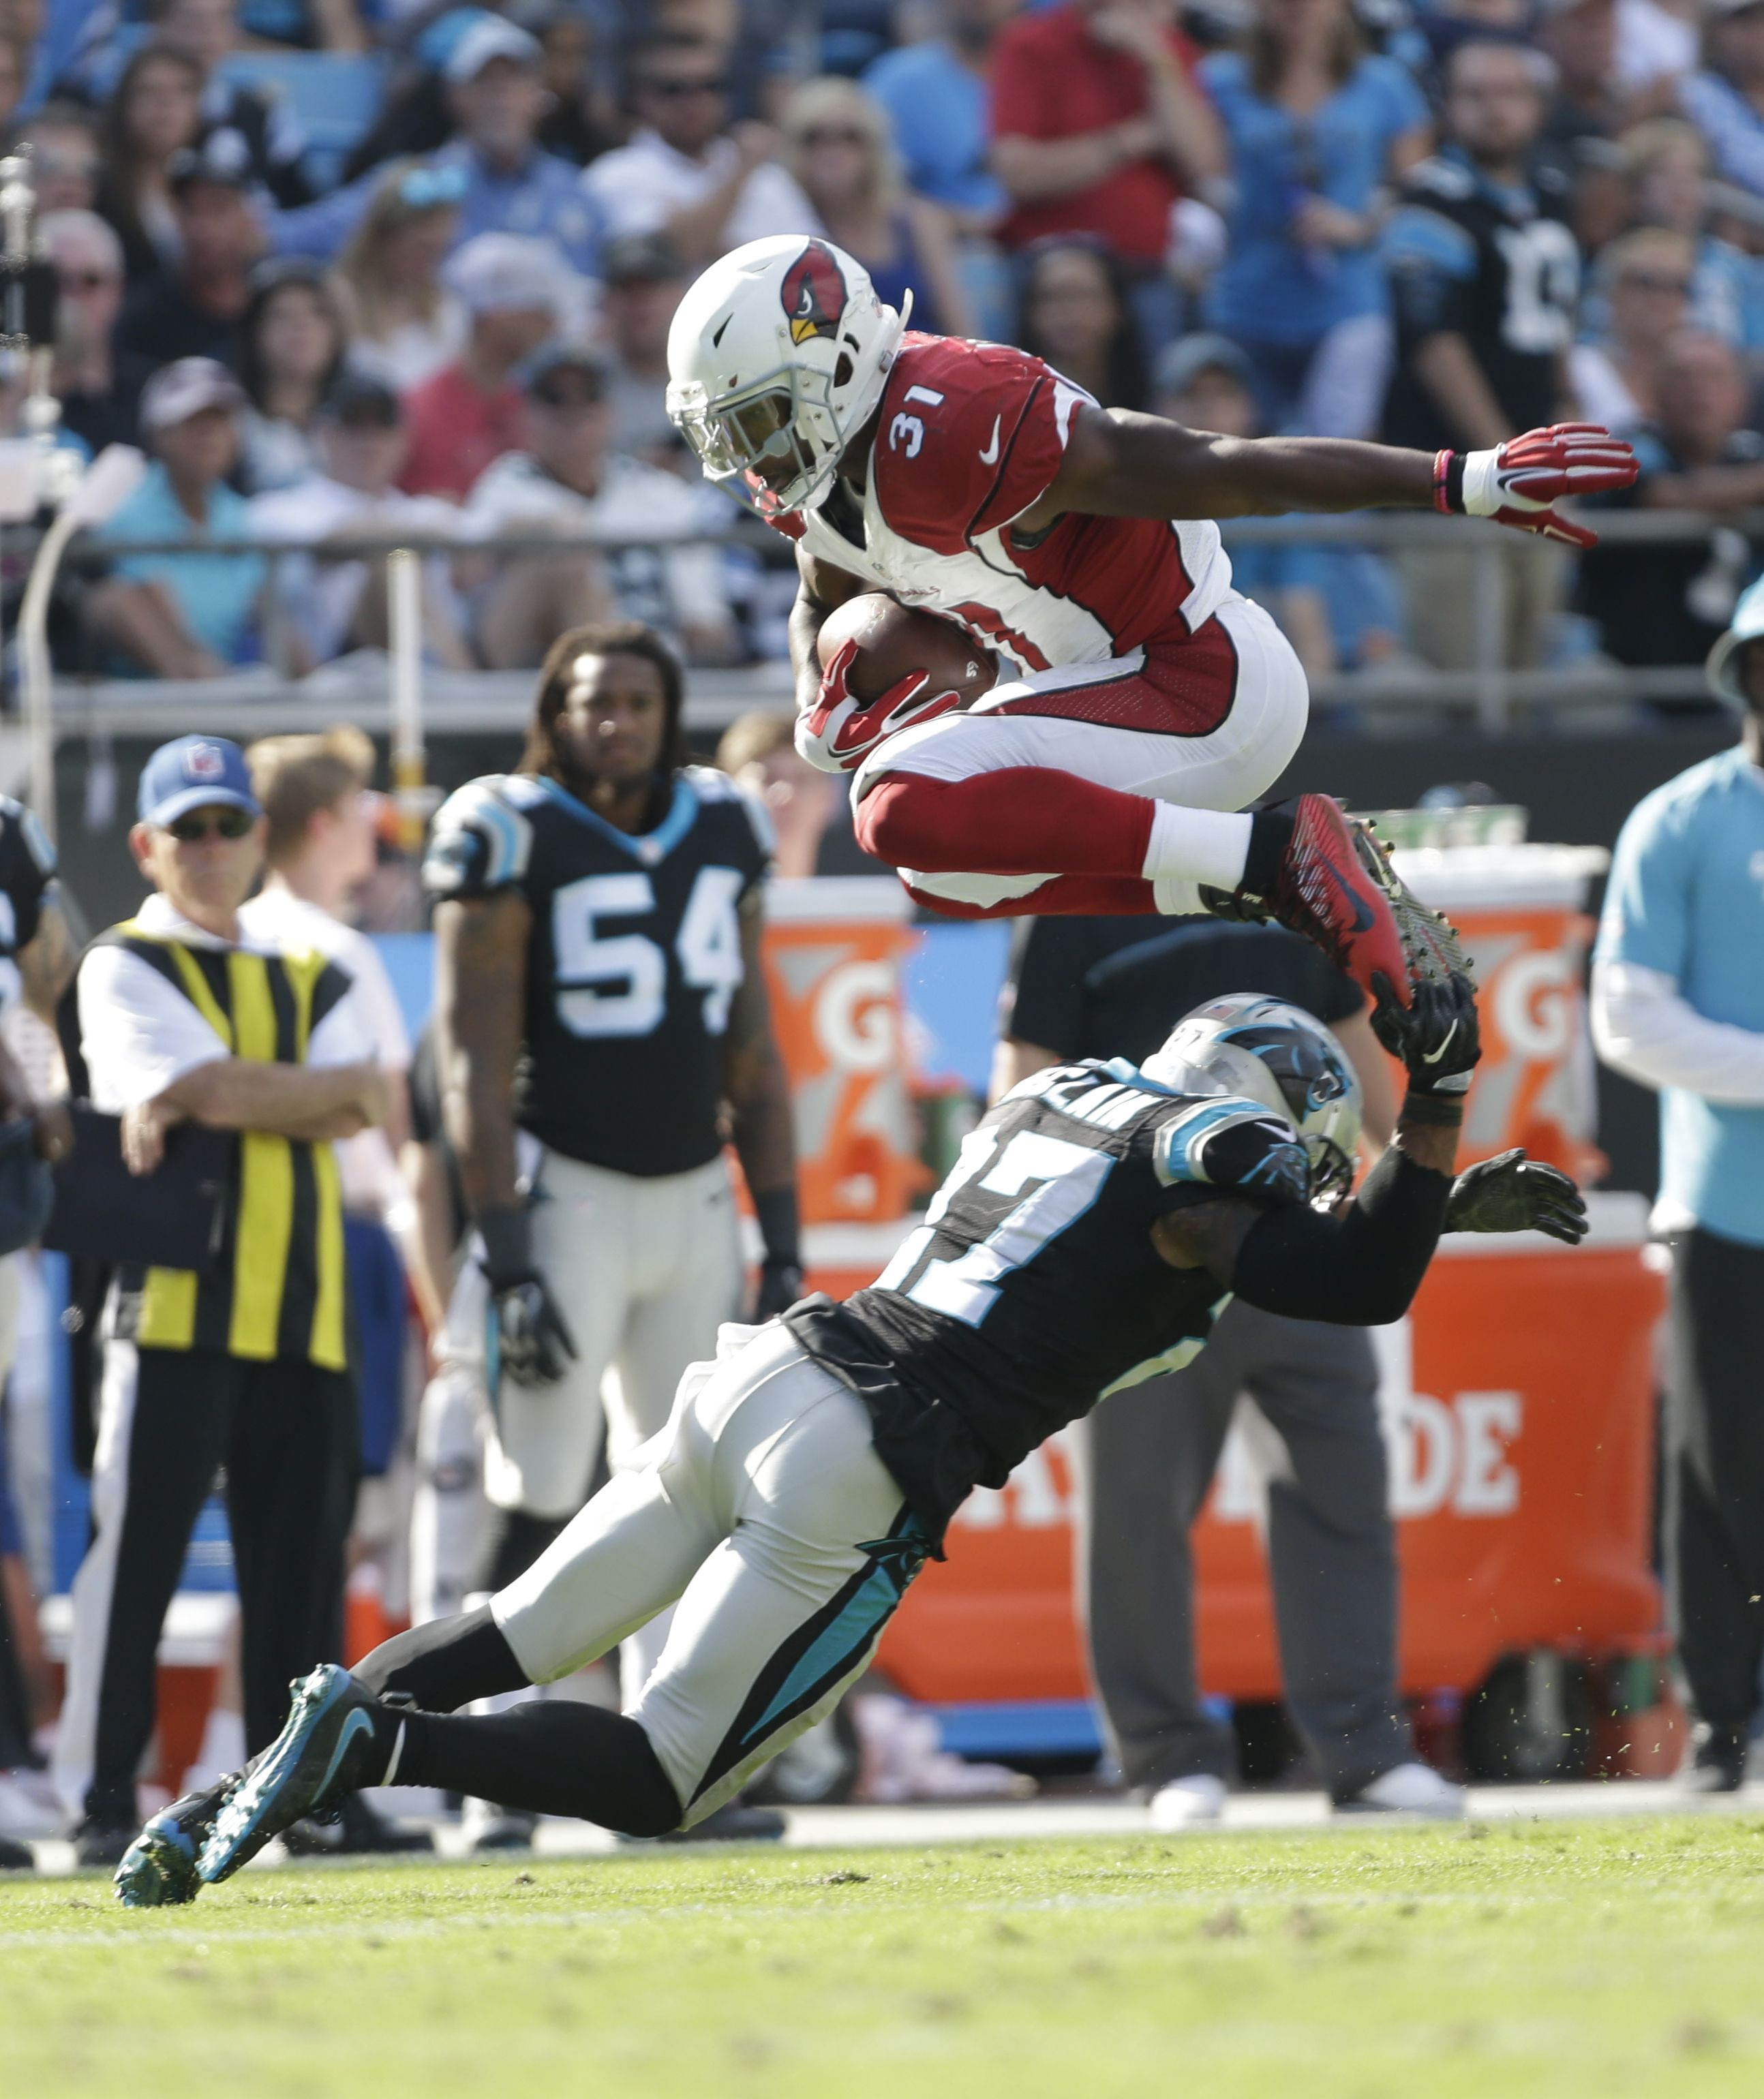 Some People Go Around An Obstacle Cardinals Rb David Johnson Goes Over Ap Leverone Arizona Cardinals Nfl Teams Nfl Season